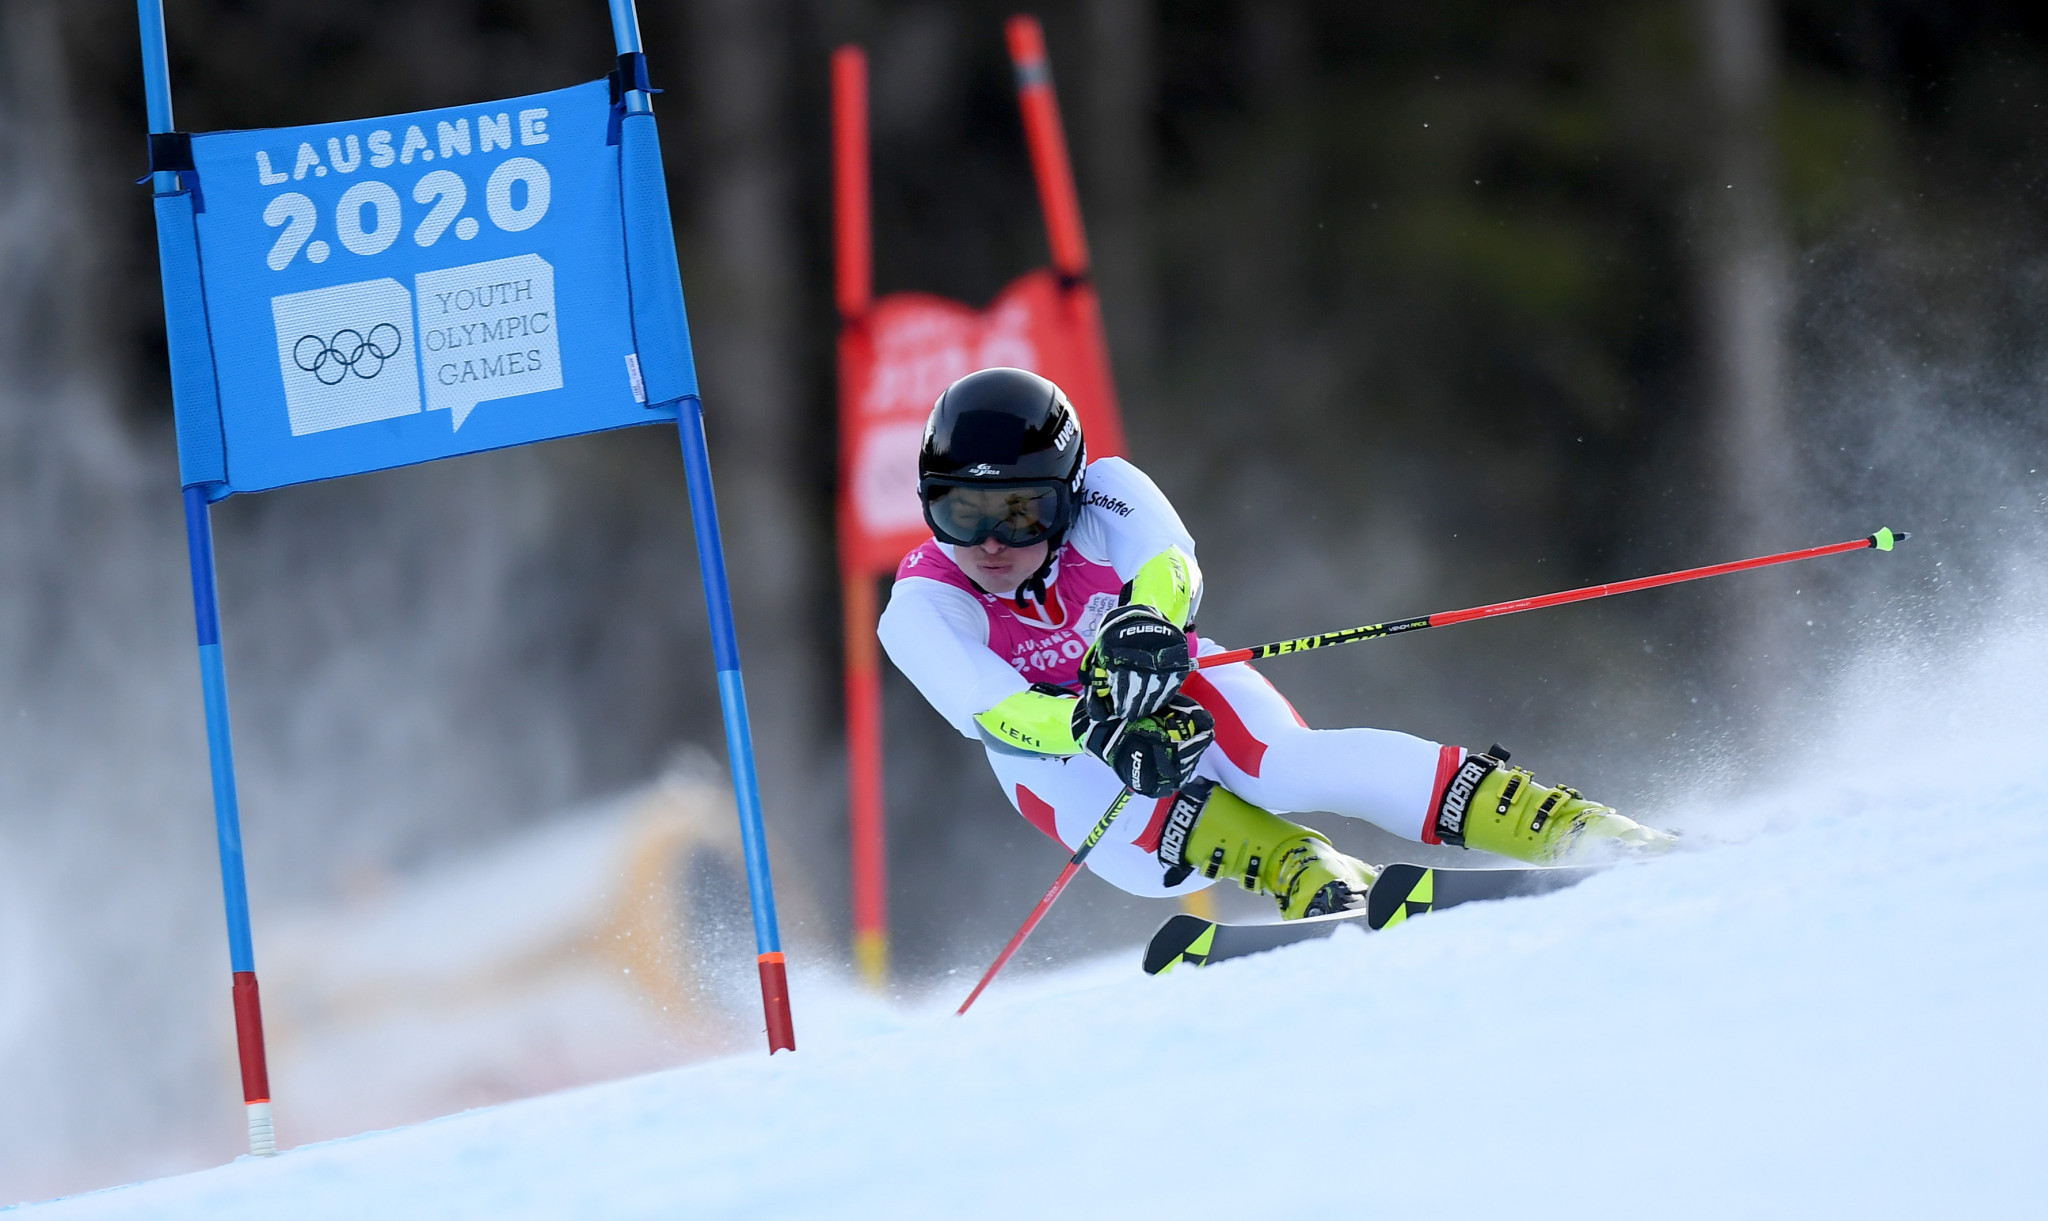 Austria's Phillip Hoffmann earned a dominant win in the men's giant slalom ©Getty Images